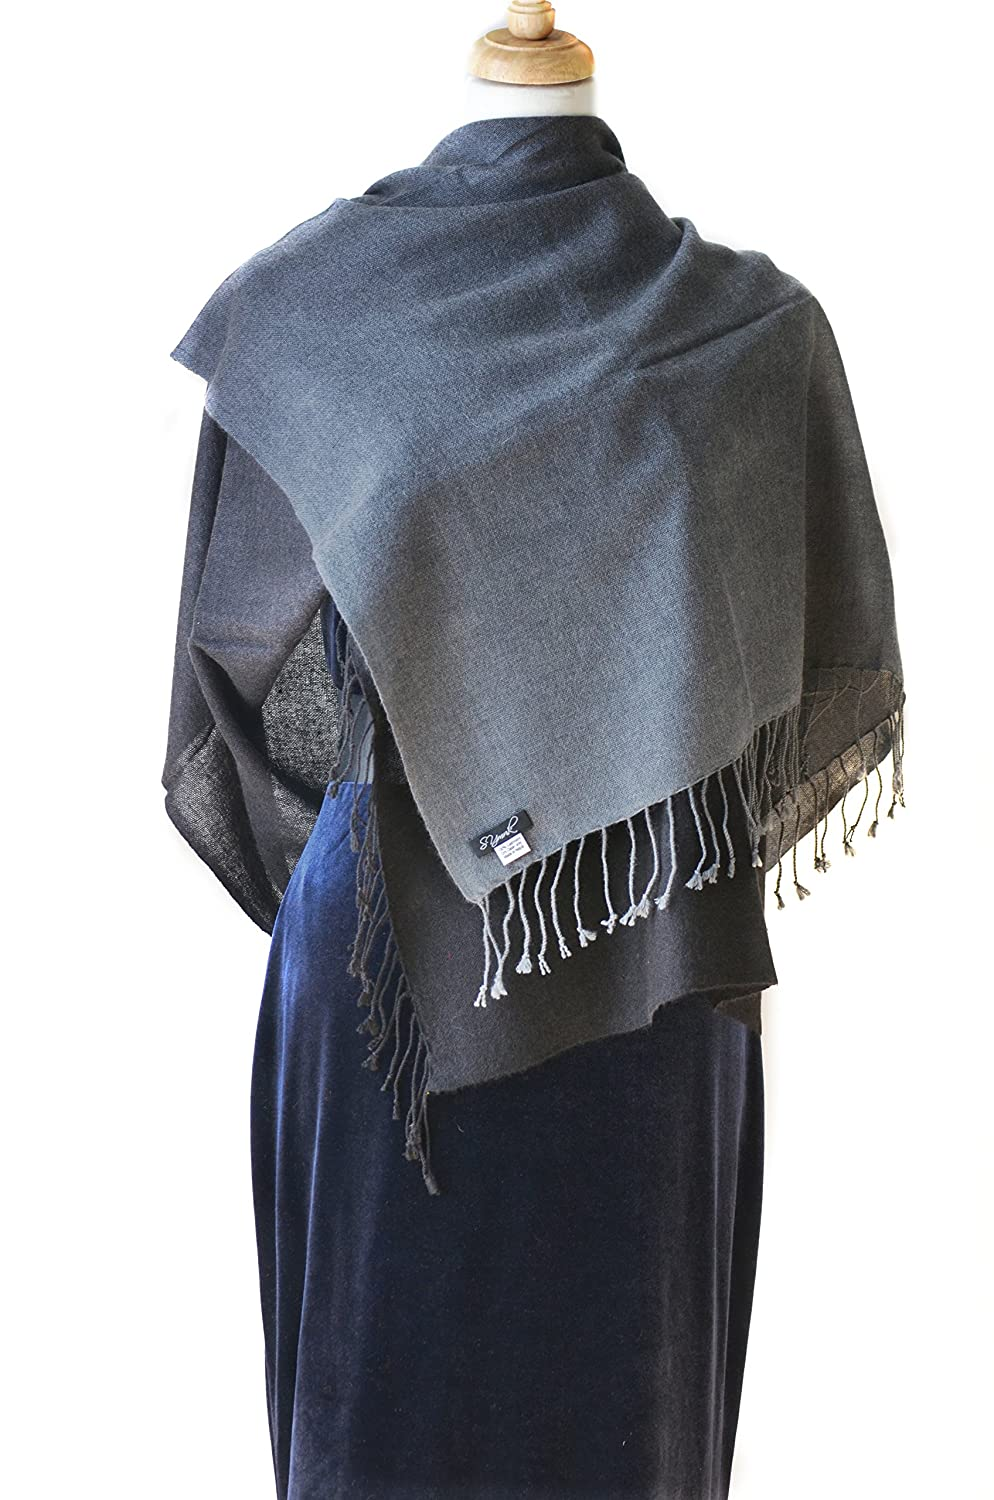 Black Grey Cashmere Shawl Scarf Handmade 100% Pure Lightweight Oversized